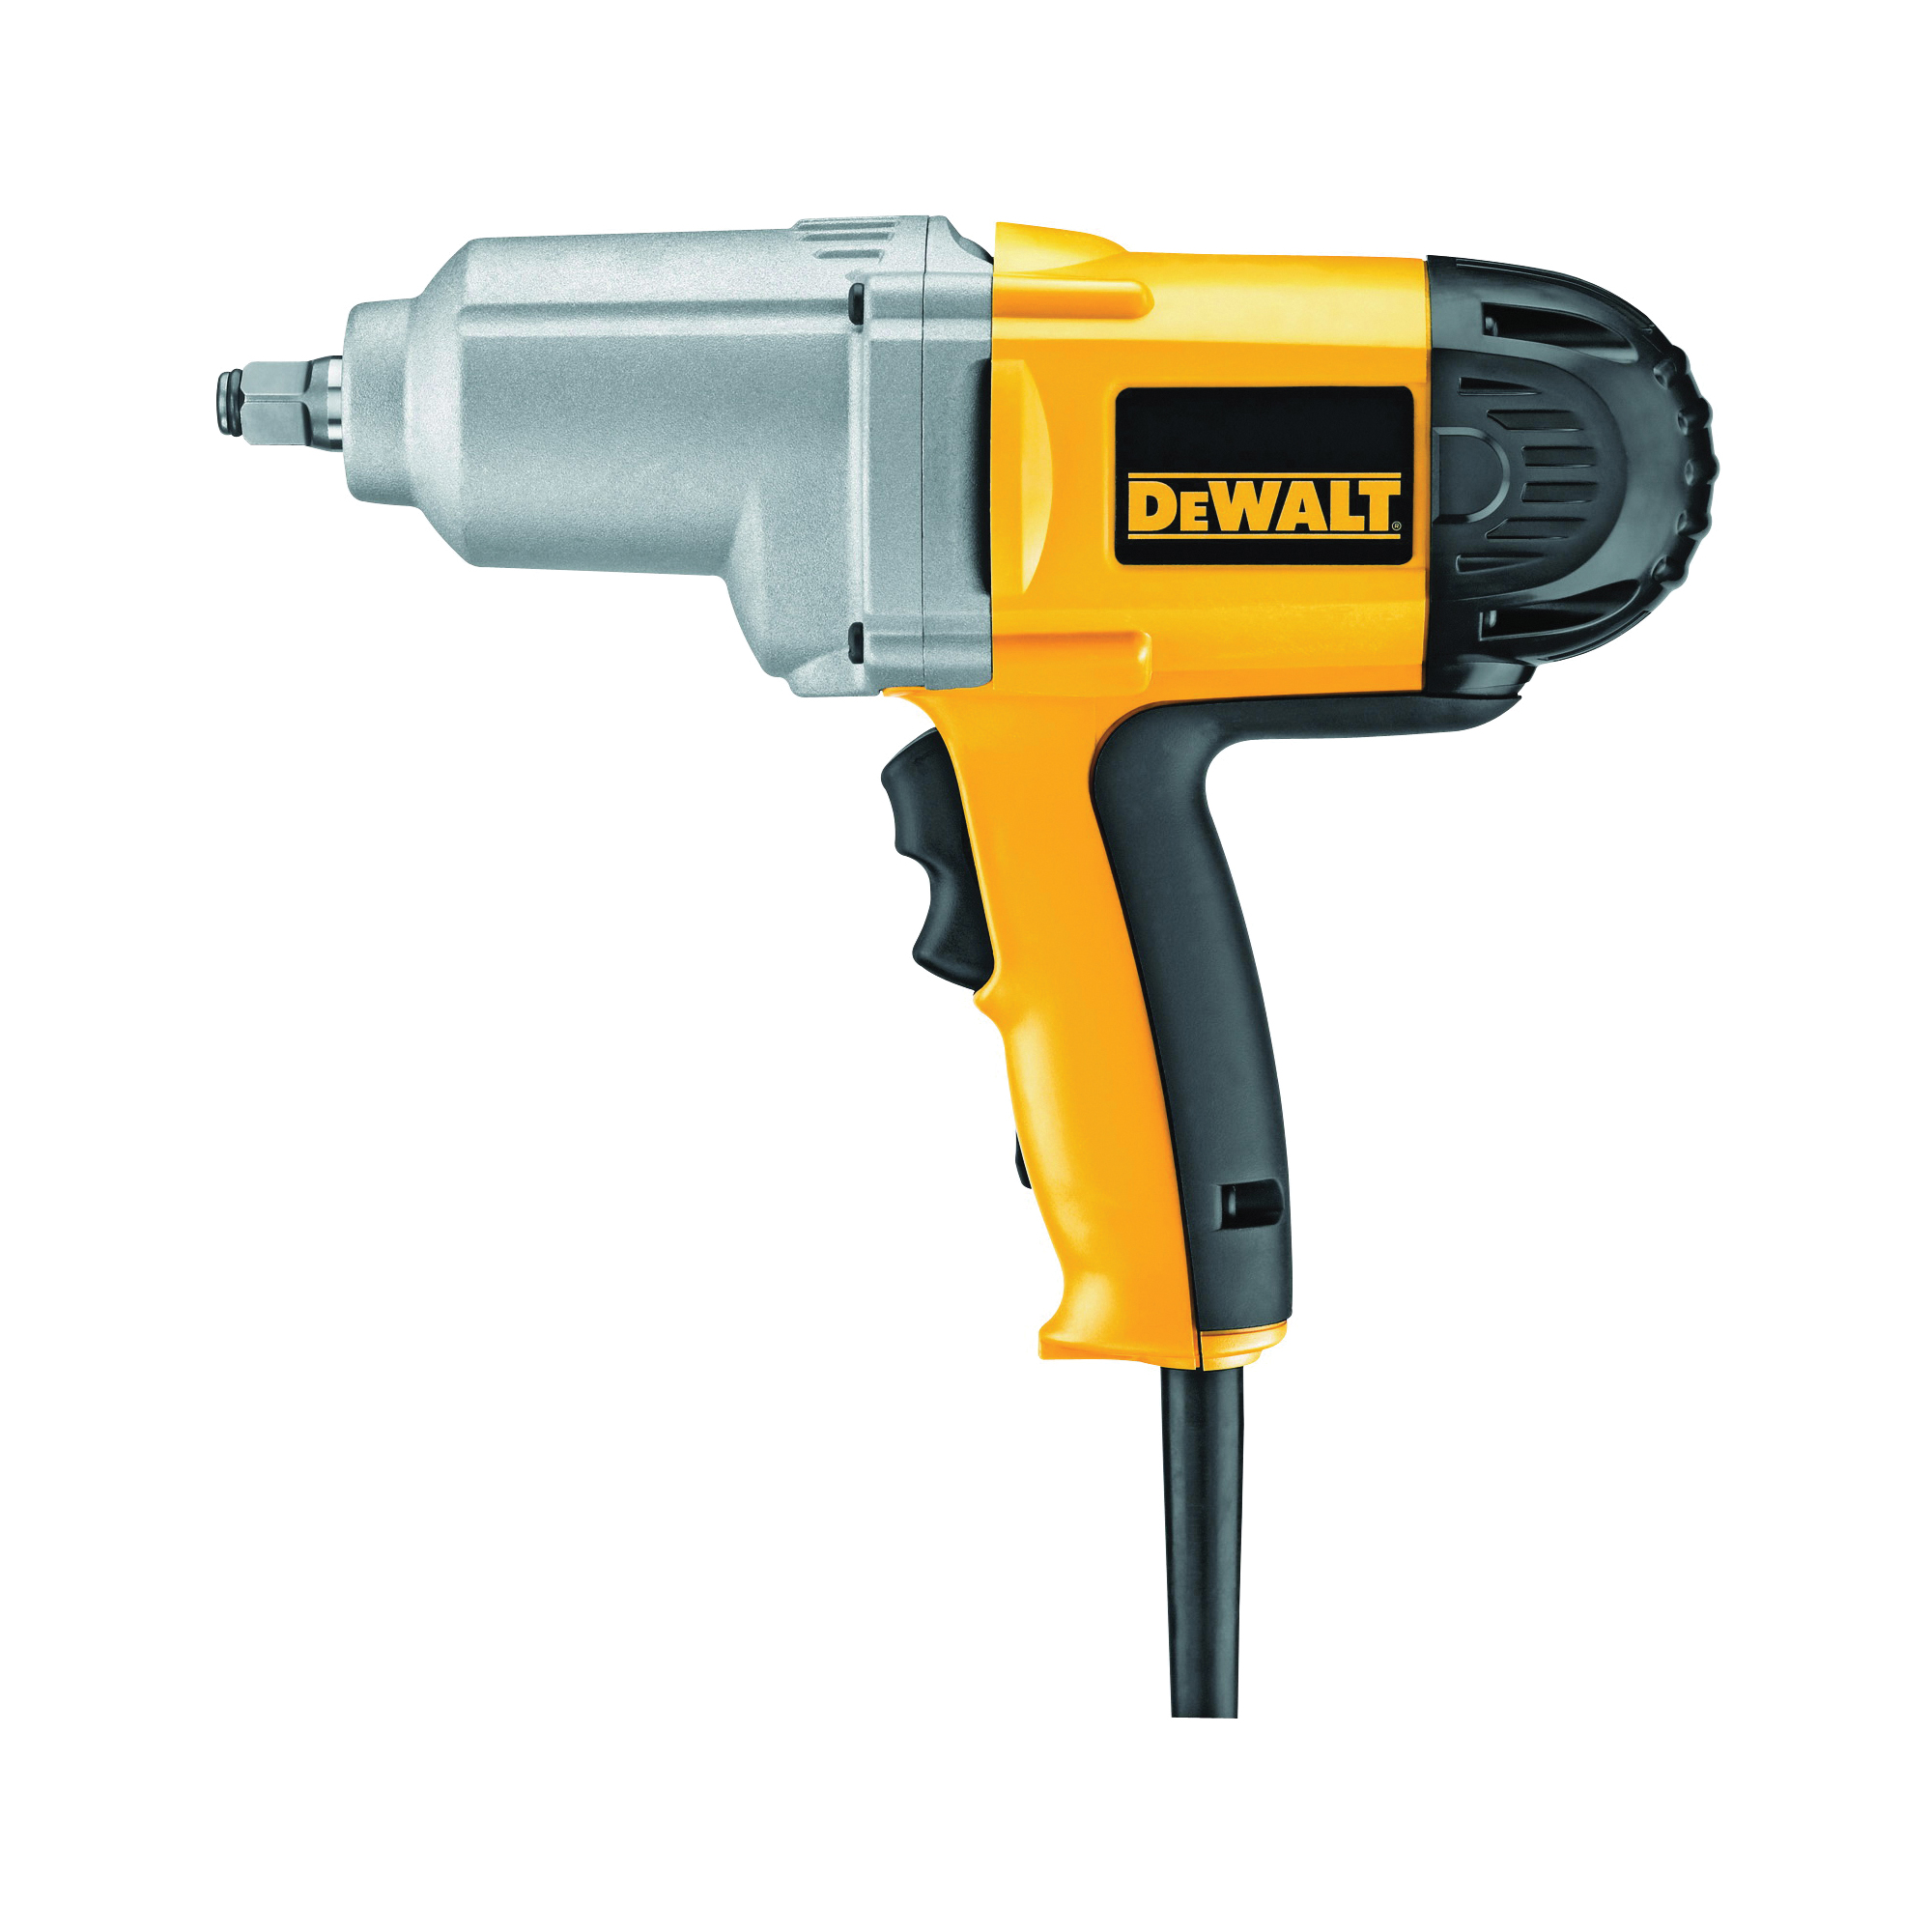 Picture of DeWALT DW293 Impact Wrench with Hog Ring Anvil, 120 V, 1/2 in Drive, Square Drive, 345 ft-lb, 2100 rpm Speed